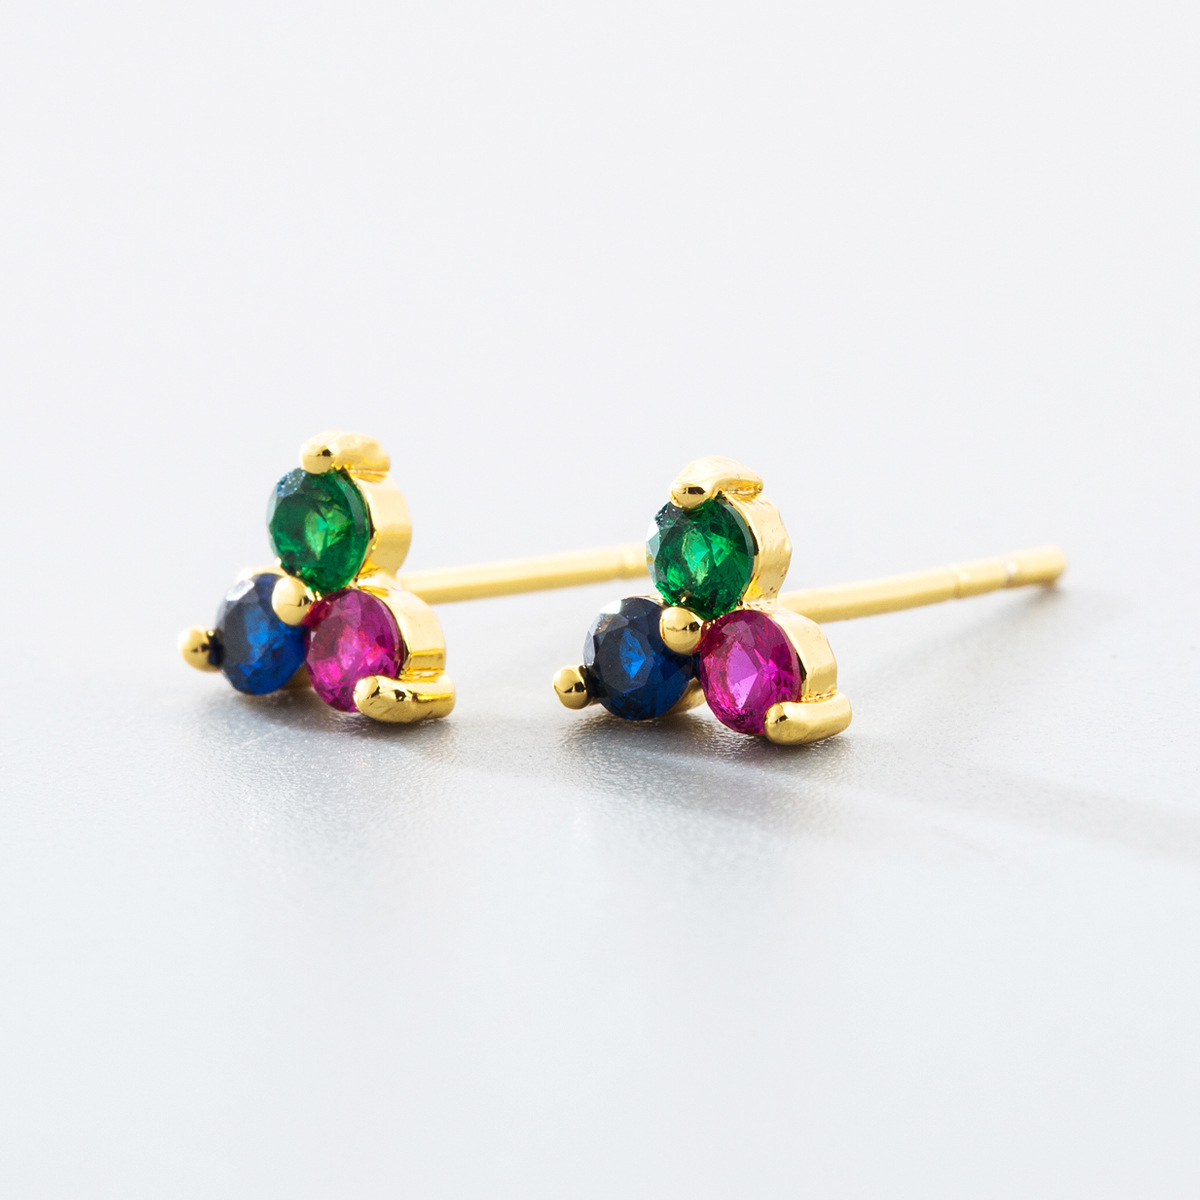 New earring fashion Korean earrings ladies earrings micro-inlaid colorful zircon geometric ear pins NHLN192568